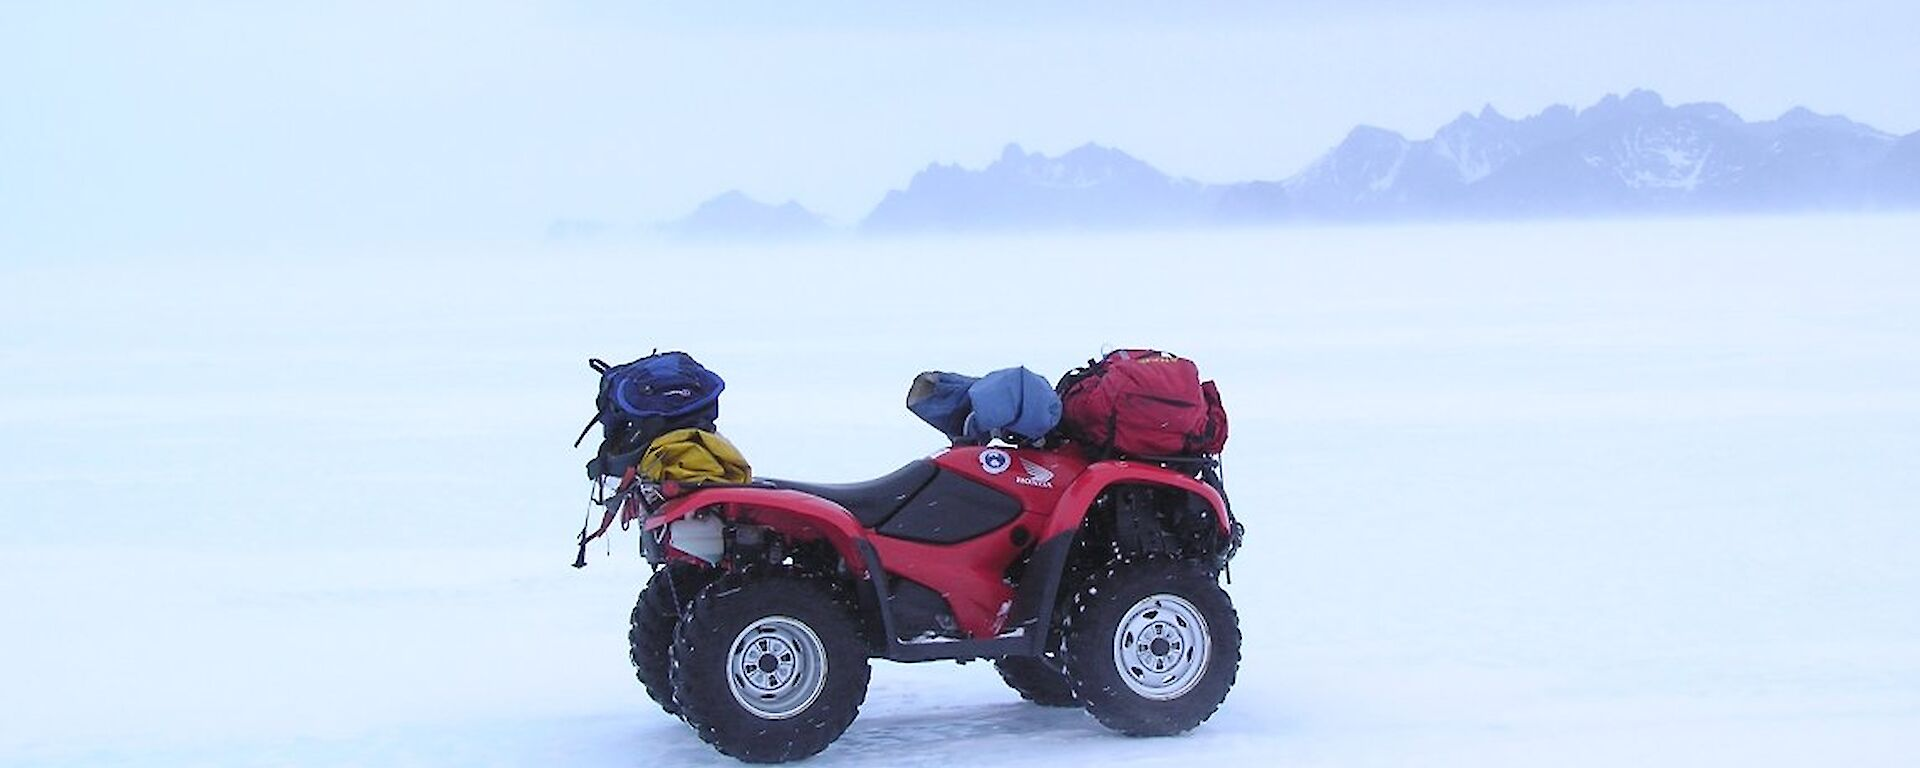 A riderless quad bike stands in some rather icy conditions